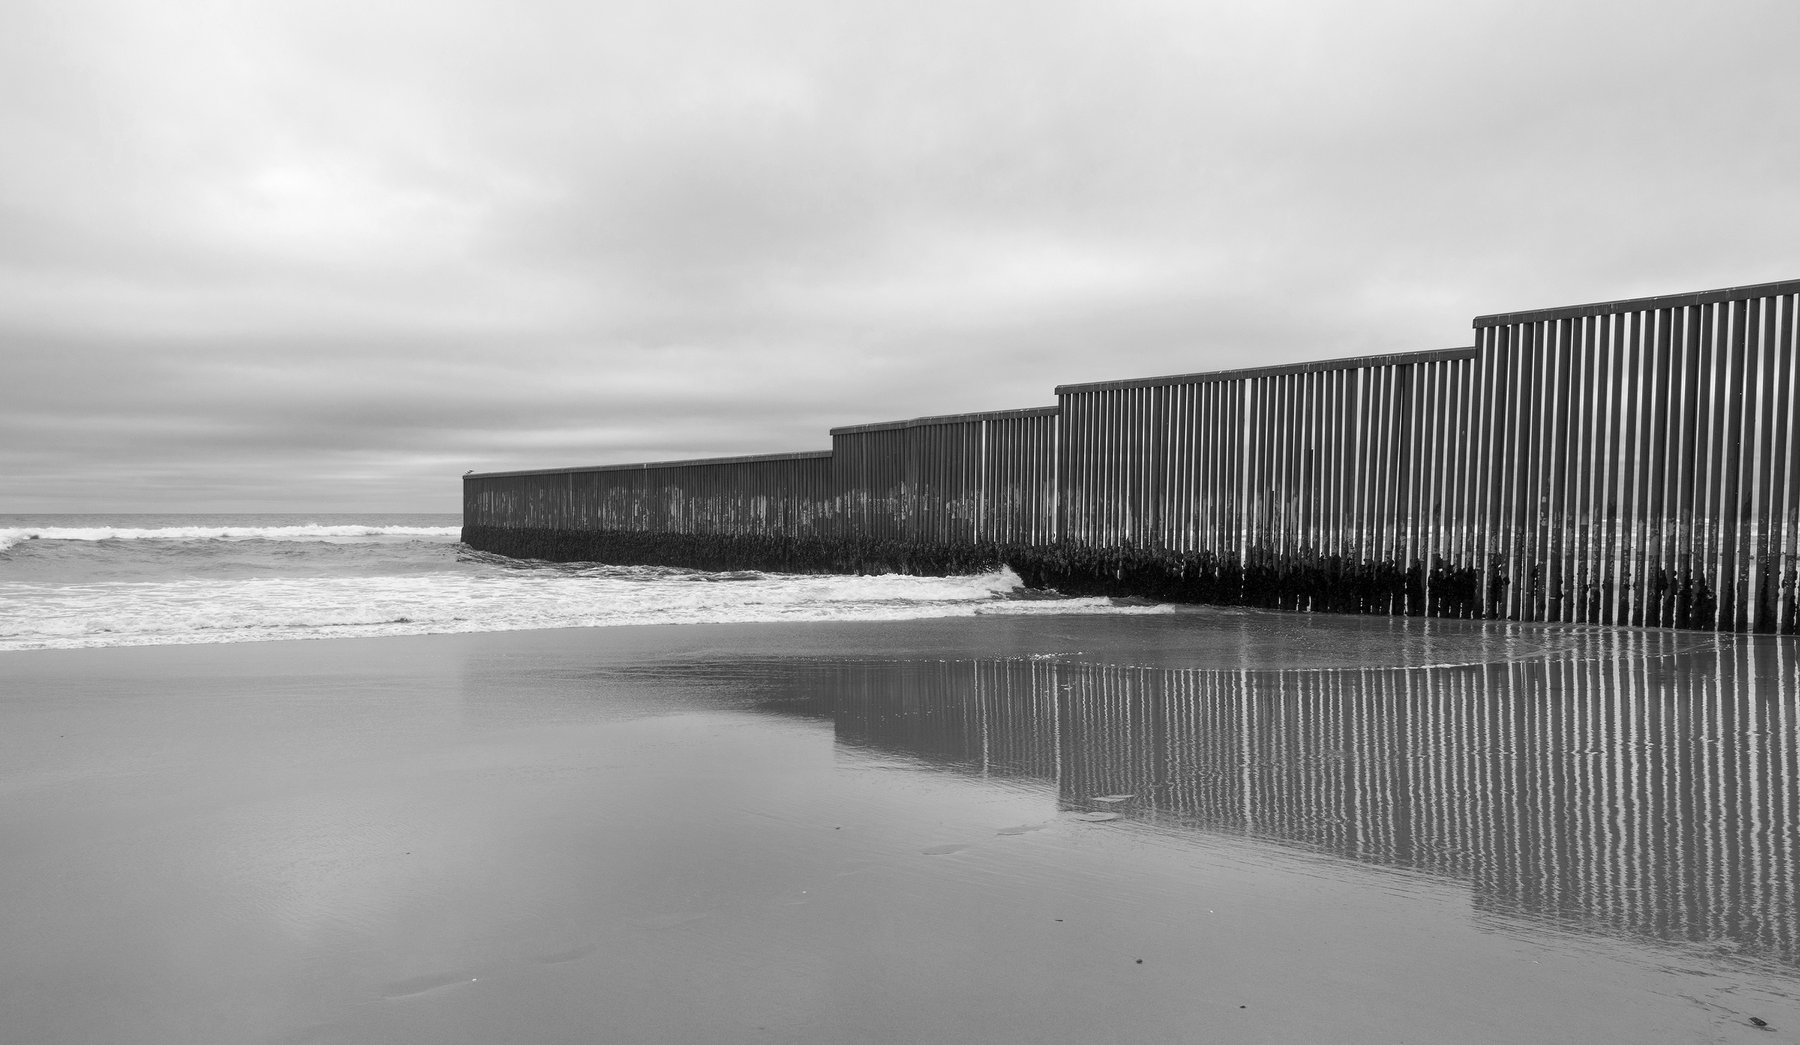 The border fence trails off into the Pacific Ocean.